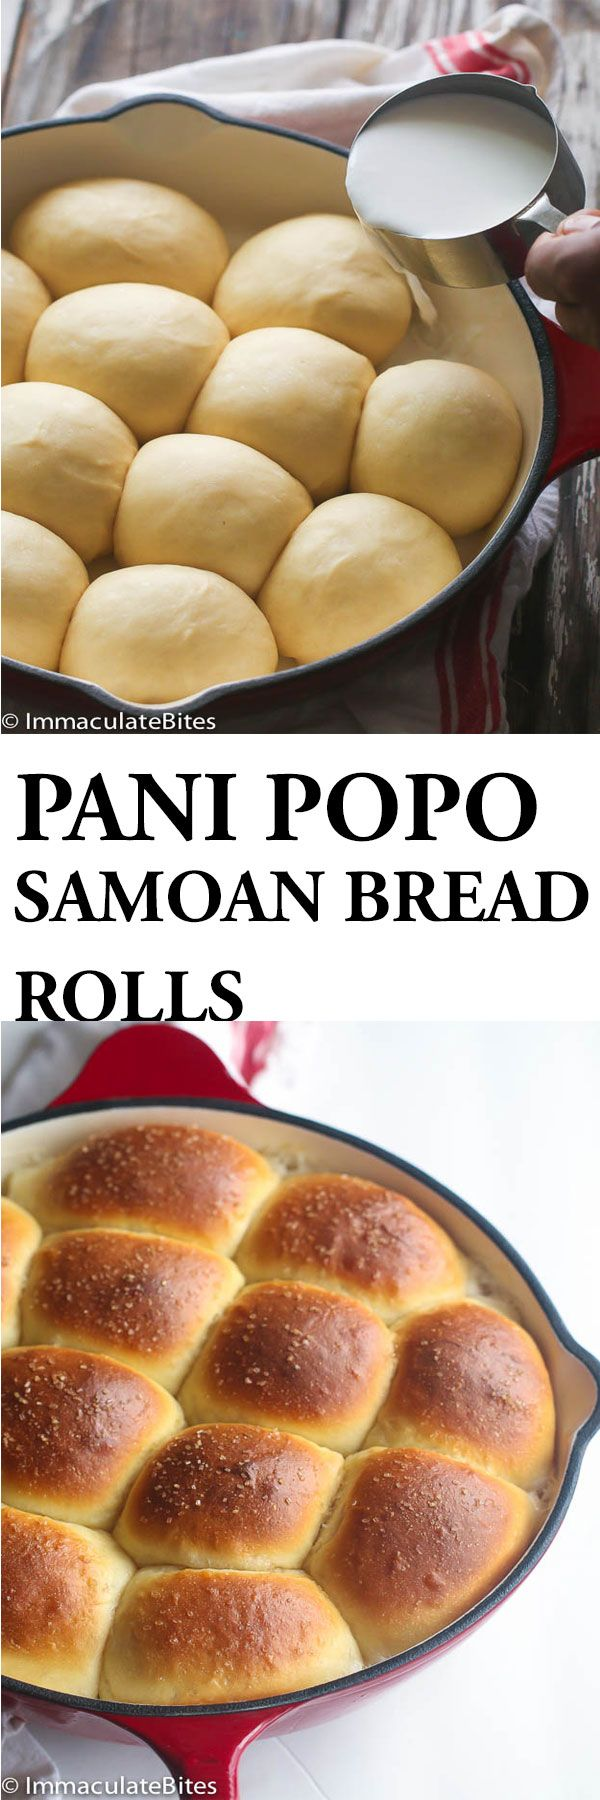 Samoan Coconut Bread Rolls aka Pani Popo. Decadent Sweet Dinner Rolls baked in coconut milk .Light, Airy and Fluffy .Unbelievable good!! My immense love of anything and everything coconut coupled with my continued urge to make my weekend morning worth looking forward to, steer me, towards this Coconut Samoan Sweet Bread. I knew …